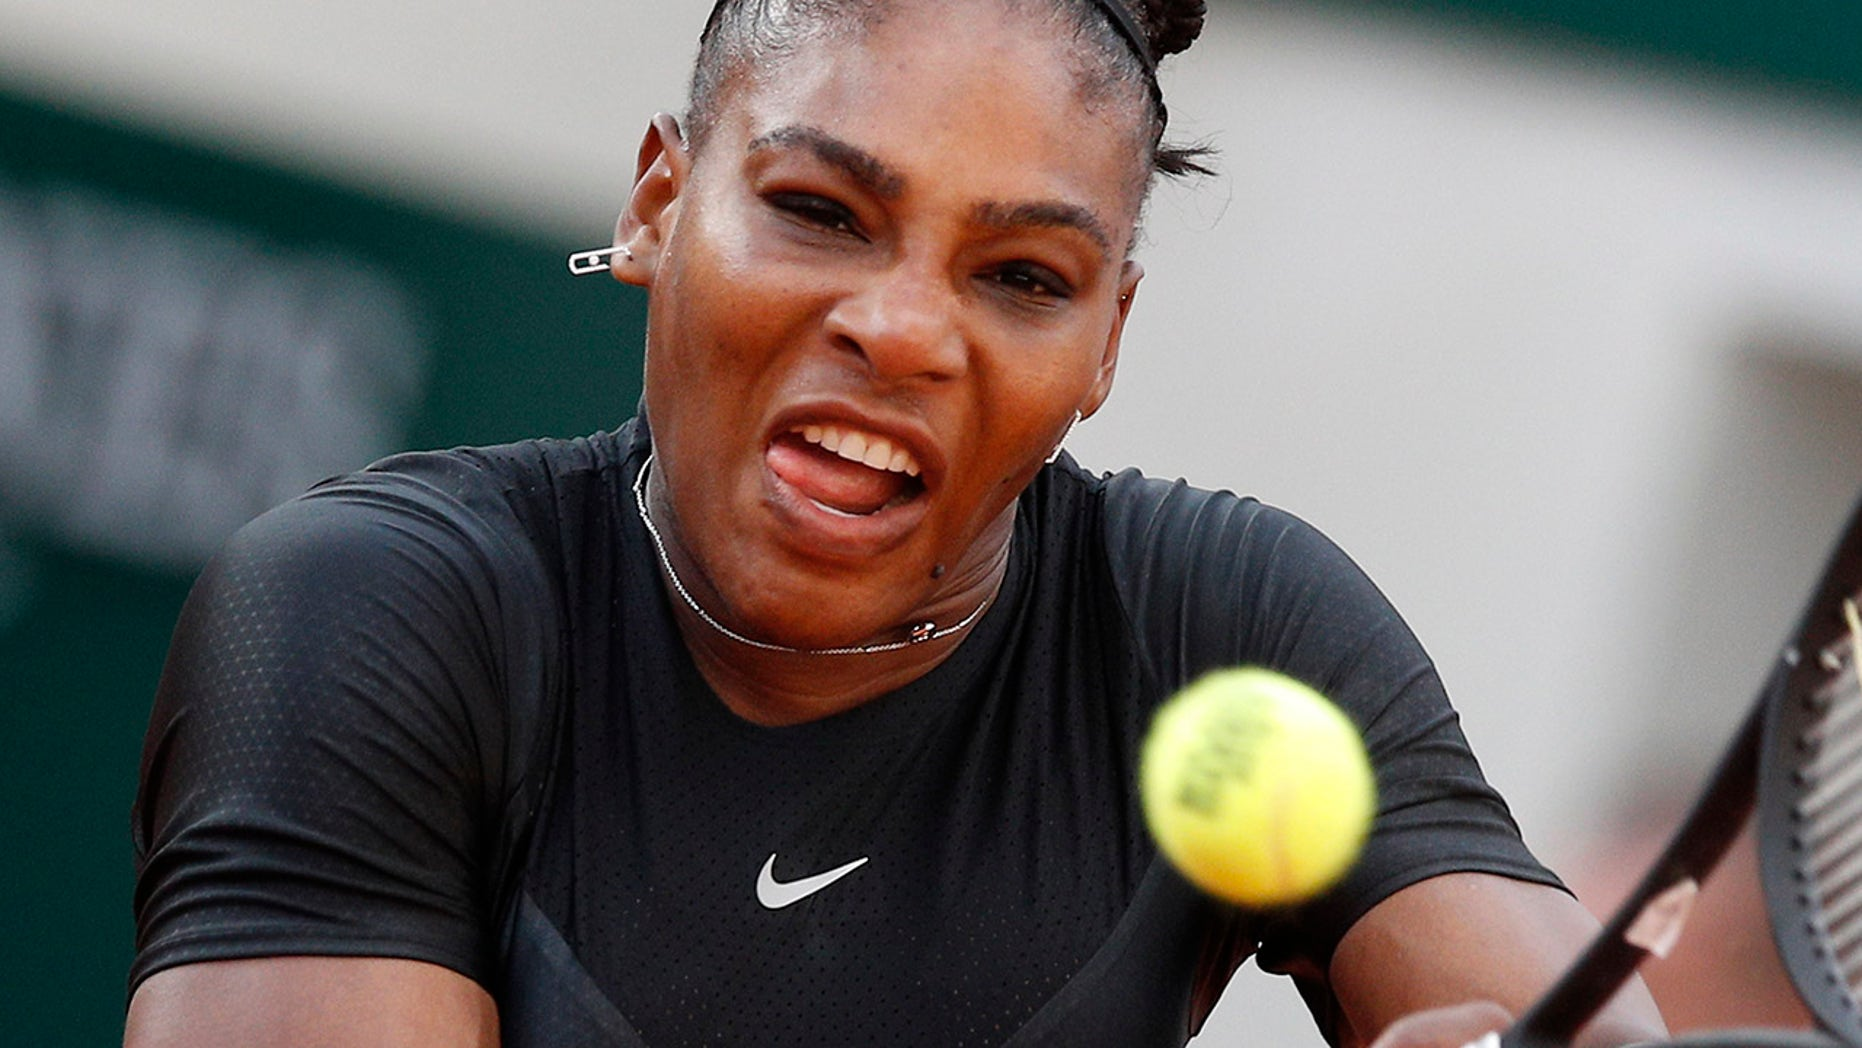 Serena Williams of the U.S. returns a shot against Germany's Julia Georges during their third round match of the French Open tennis tournament at the Roland Garros stadium in Paris.